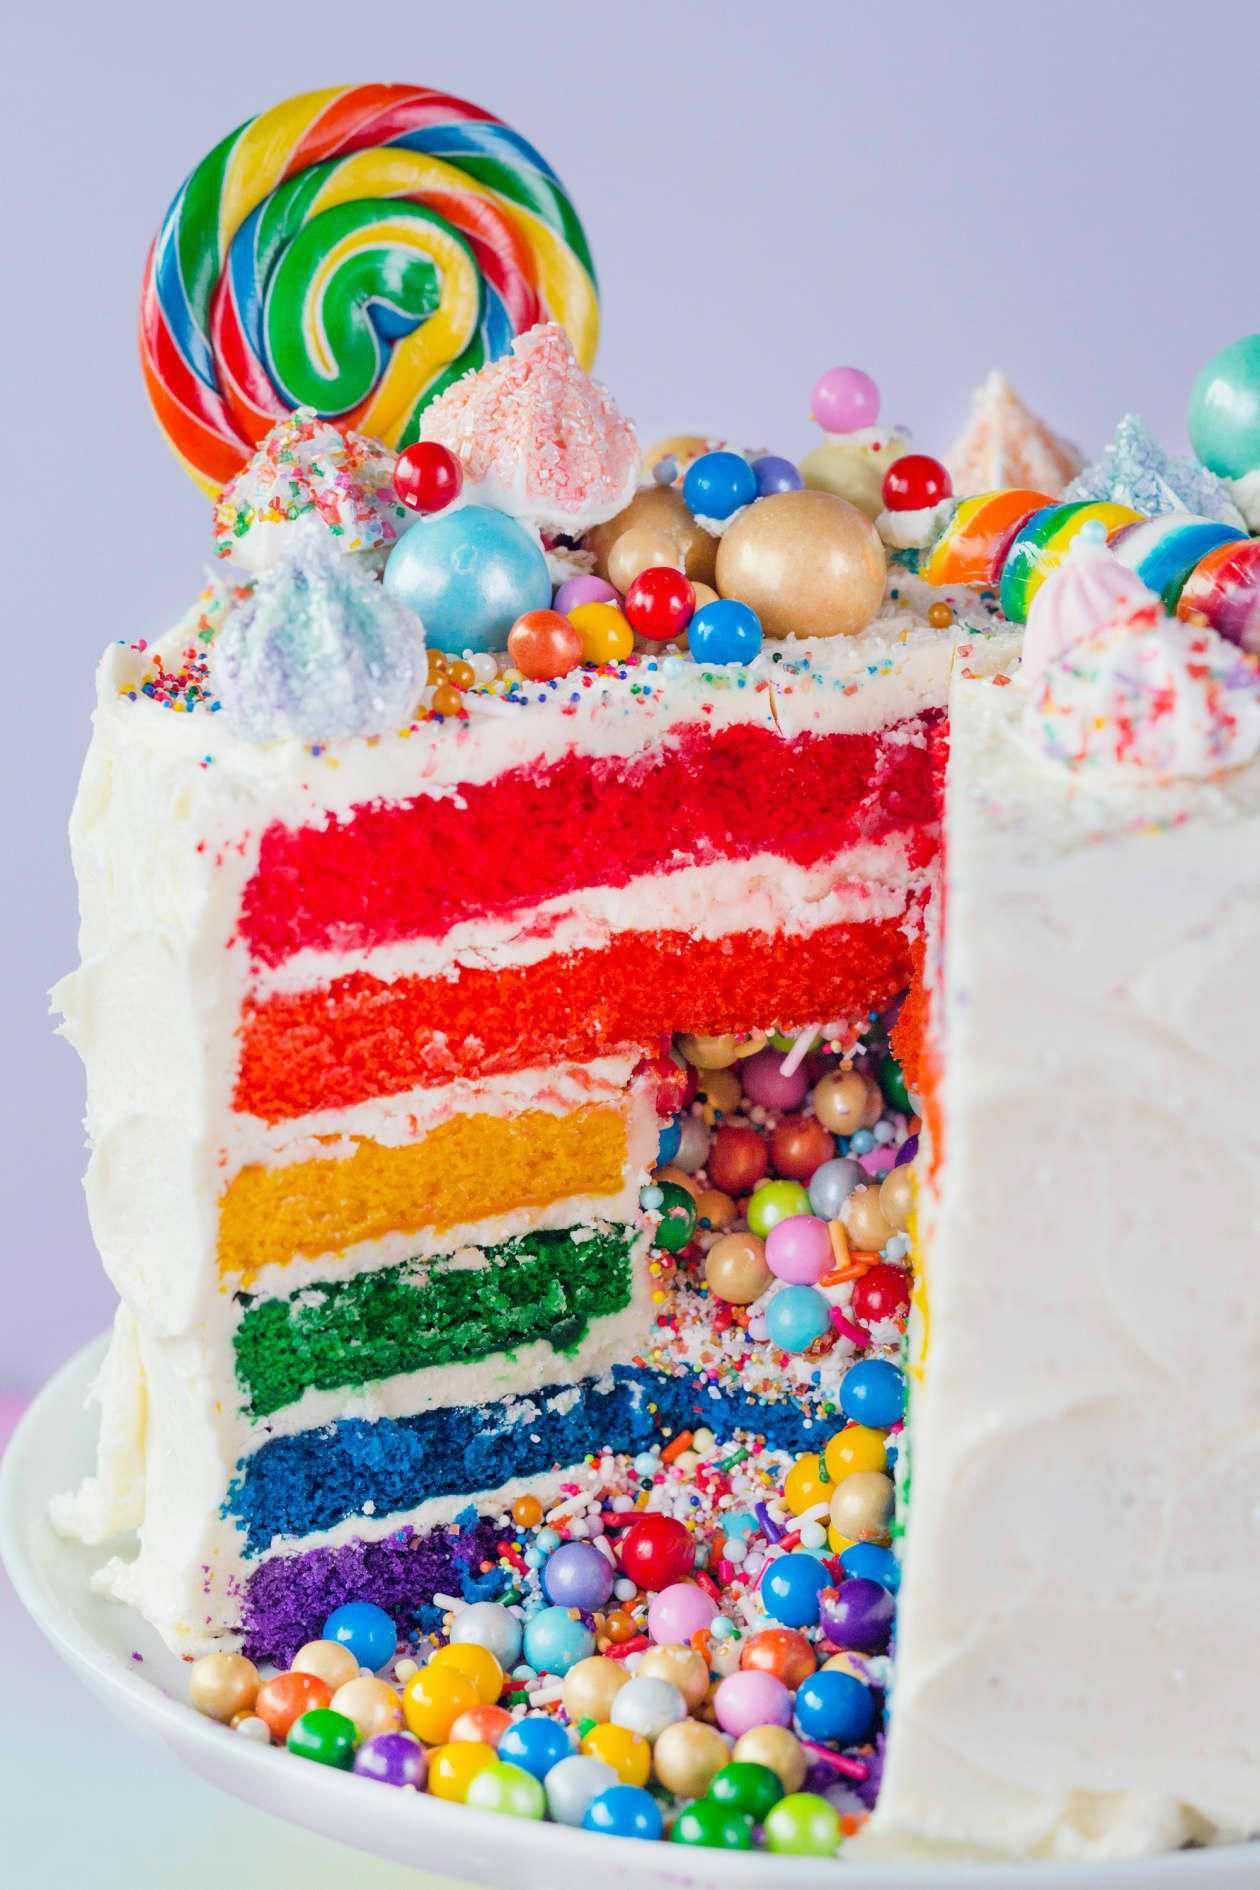 Photo of How To Make a Rainbow Layer Cake with a Candy Surprise Inside | Kitchn #lawercak…